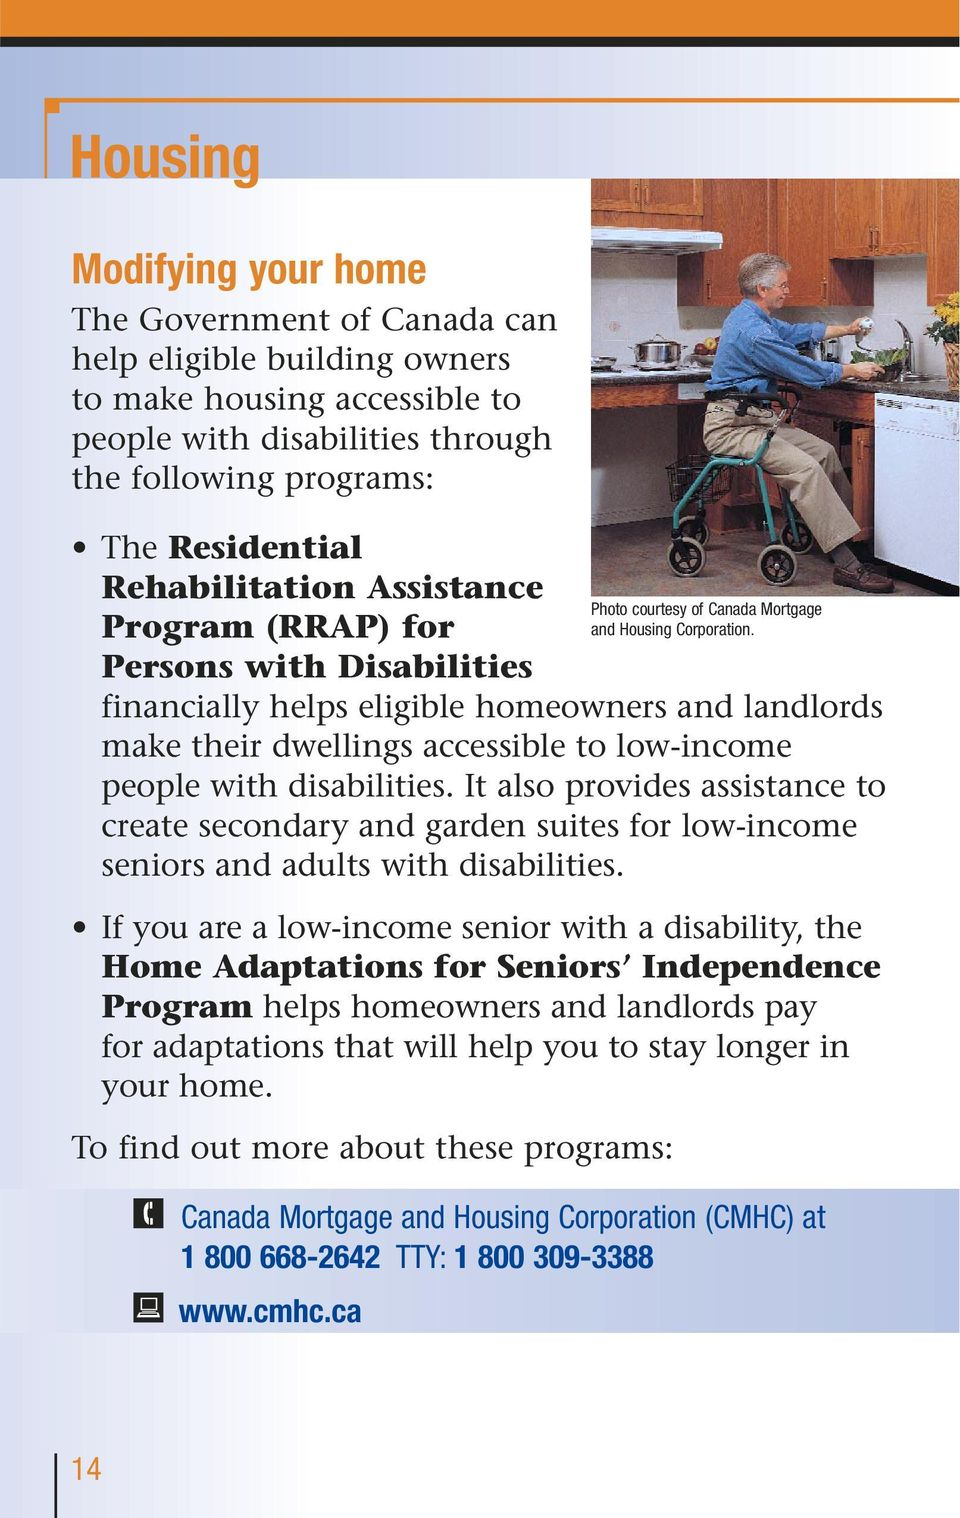 It also provides assistance to create secondary and garden suites for low-income seniors and adults with disabilities.